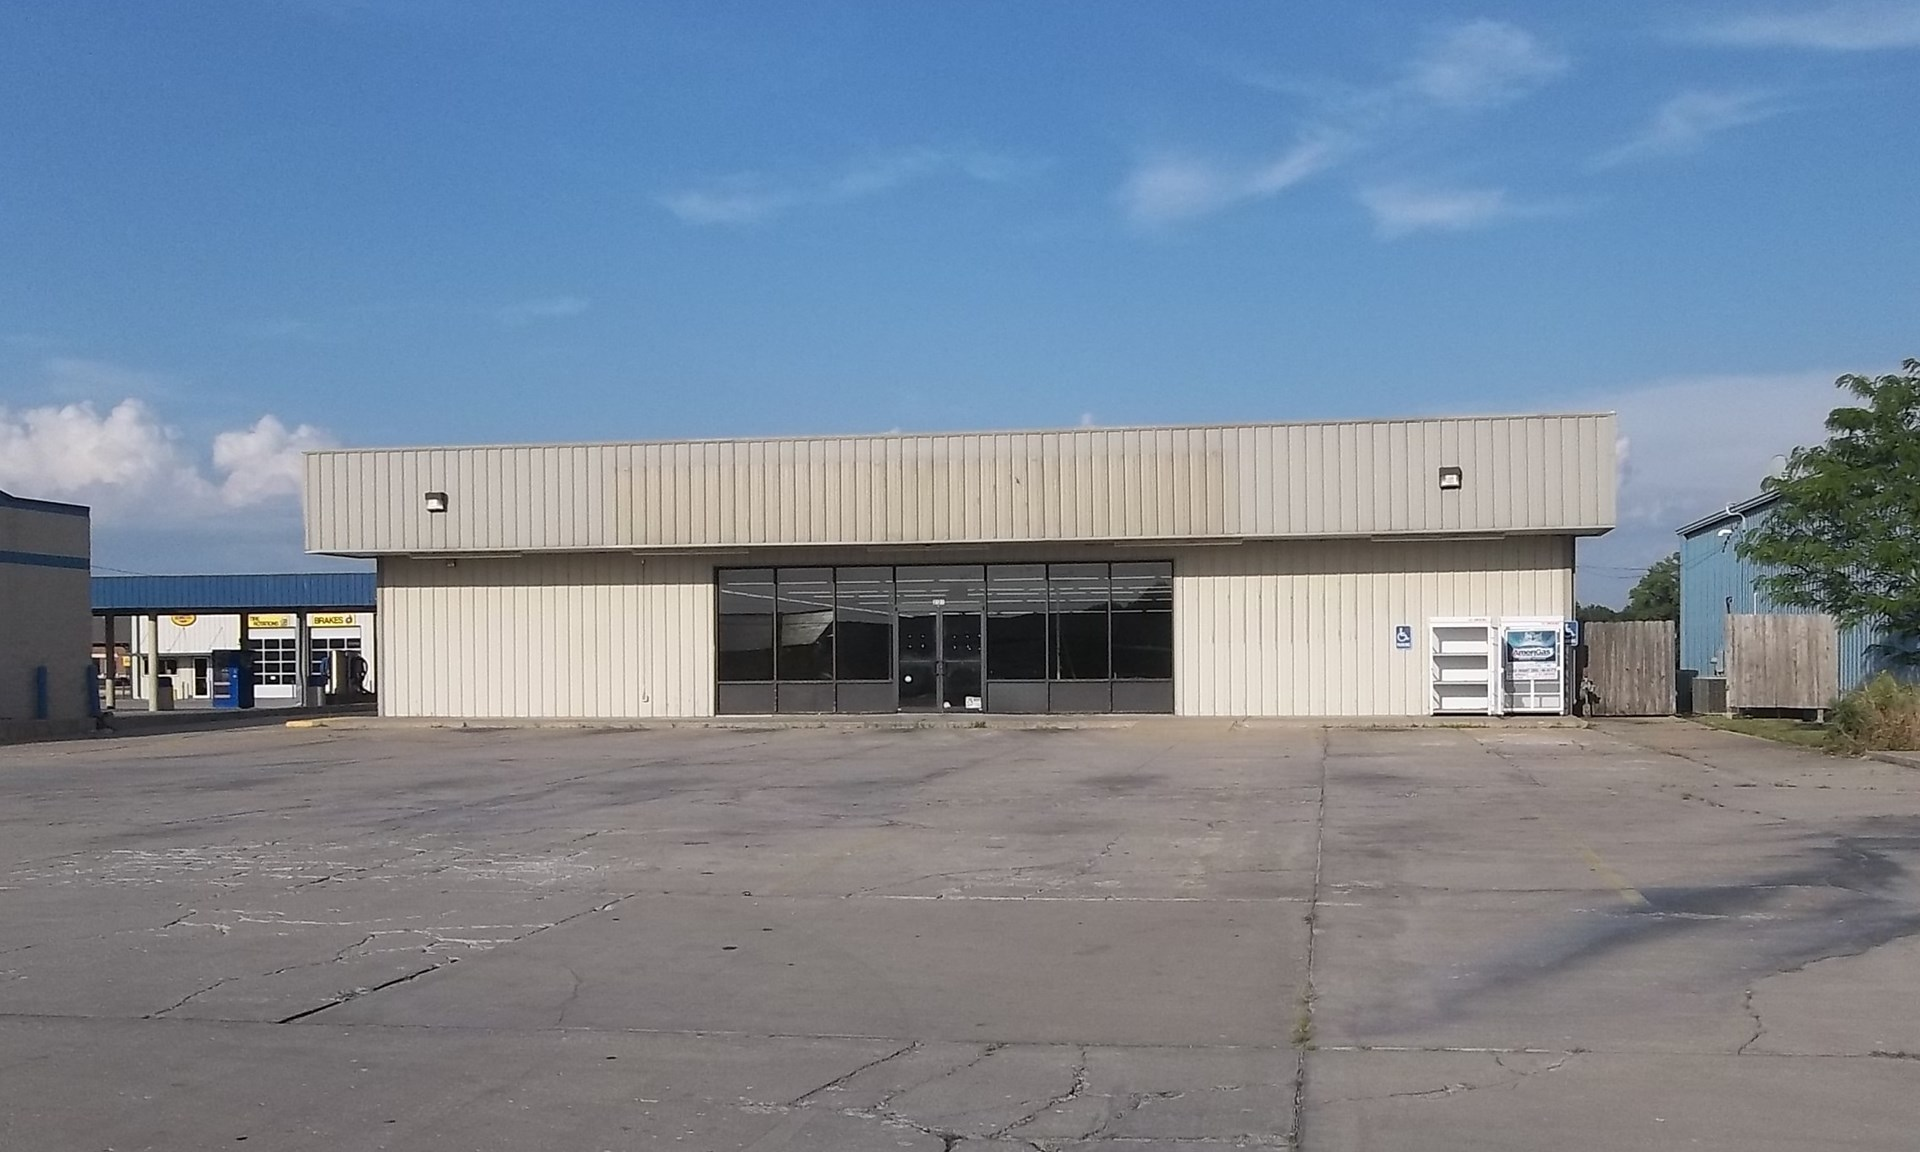 Commercial Building for Sale in Chanute, Kansas